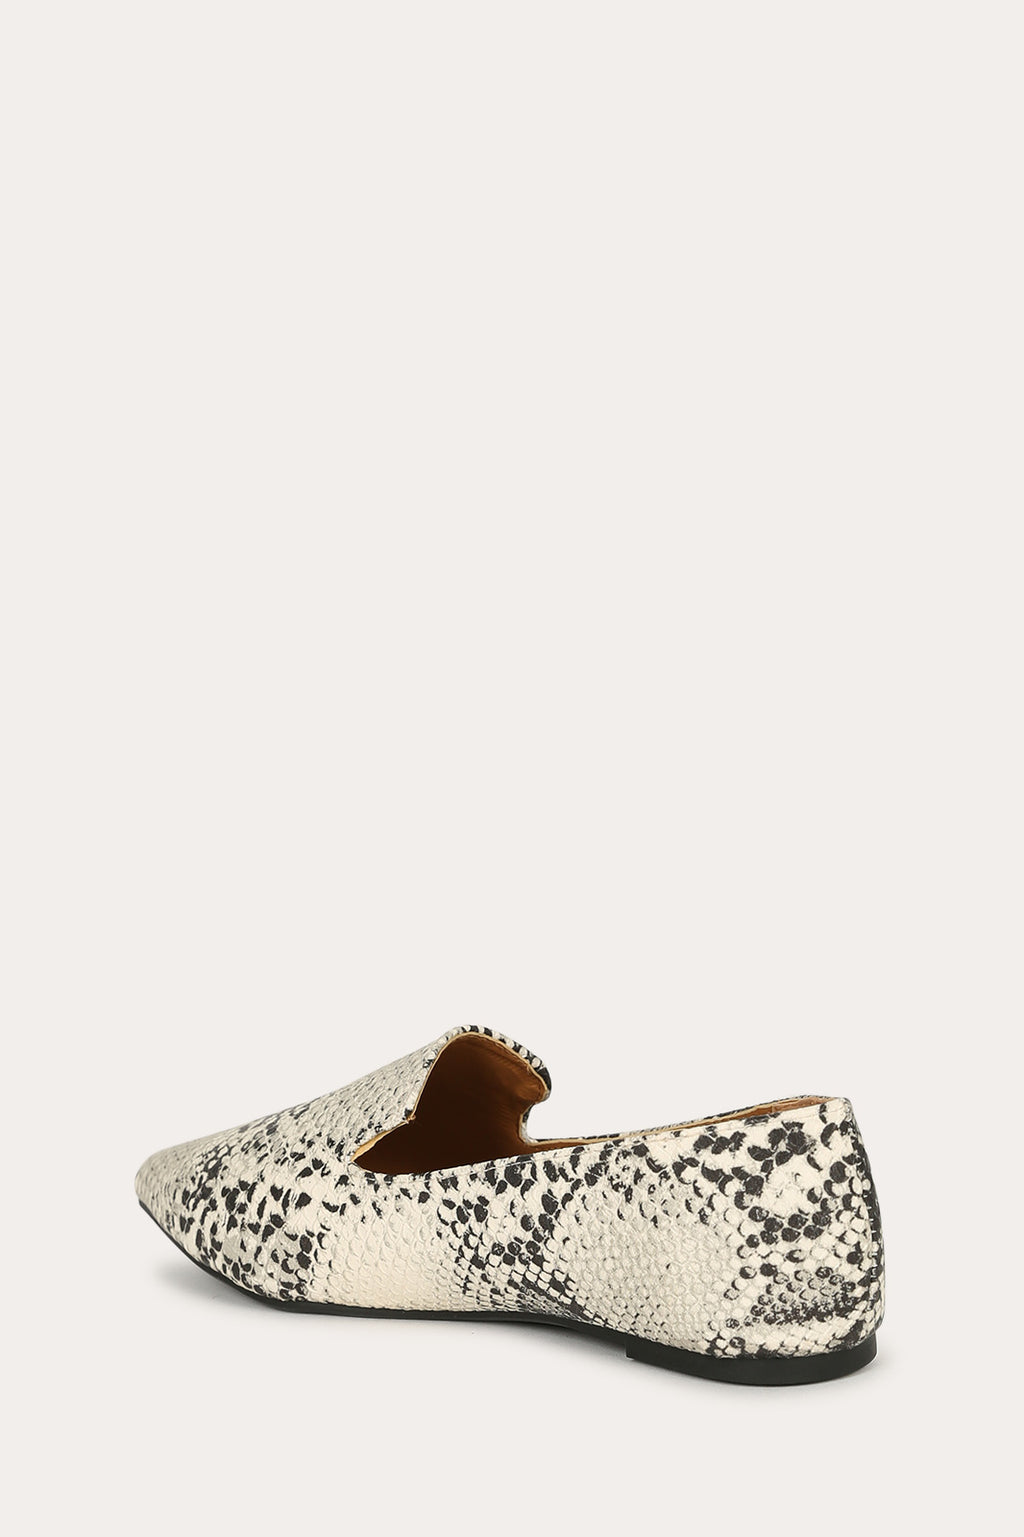 Making Moves - Snake Loafer Flats